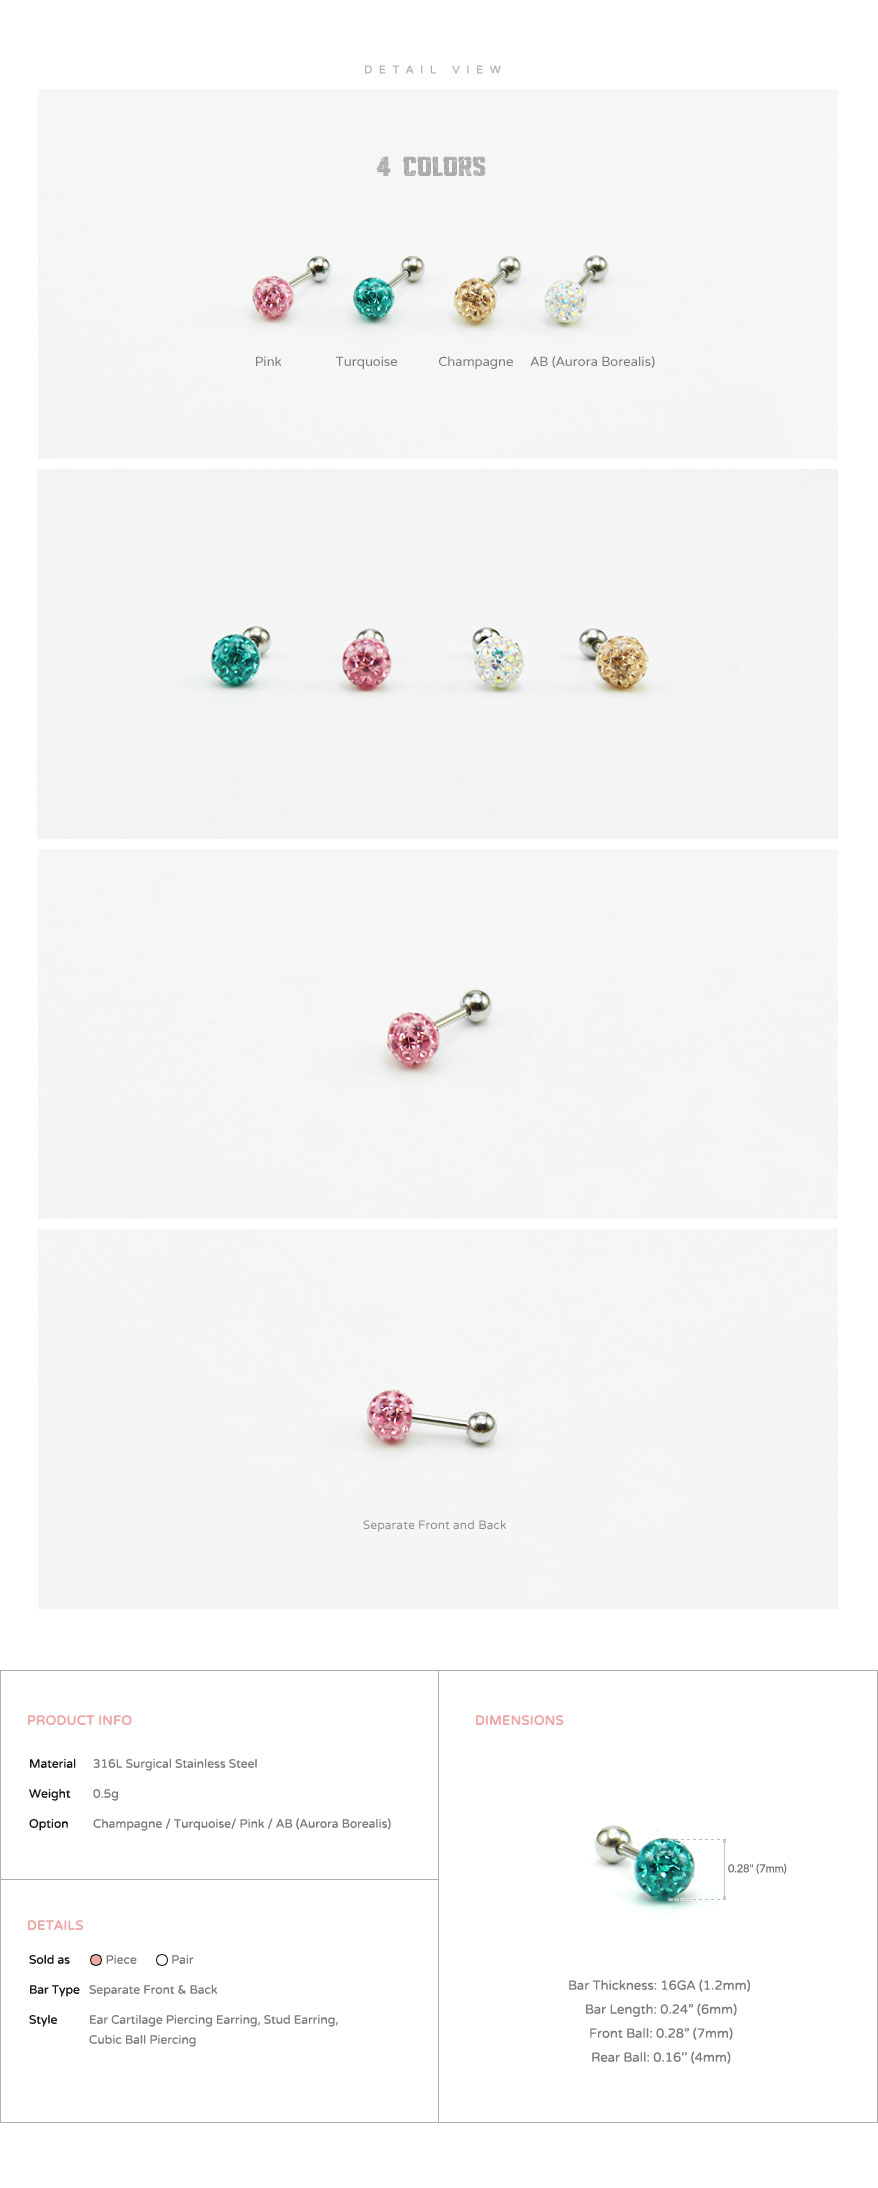 ear_studs_piercing_cartilage_earrings_16g_316l_surgical_stainless_steel_korean_asian_style_jewelry_ferido_gem_cubicball_tragus_3